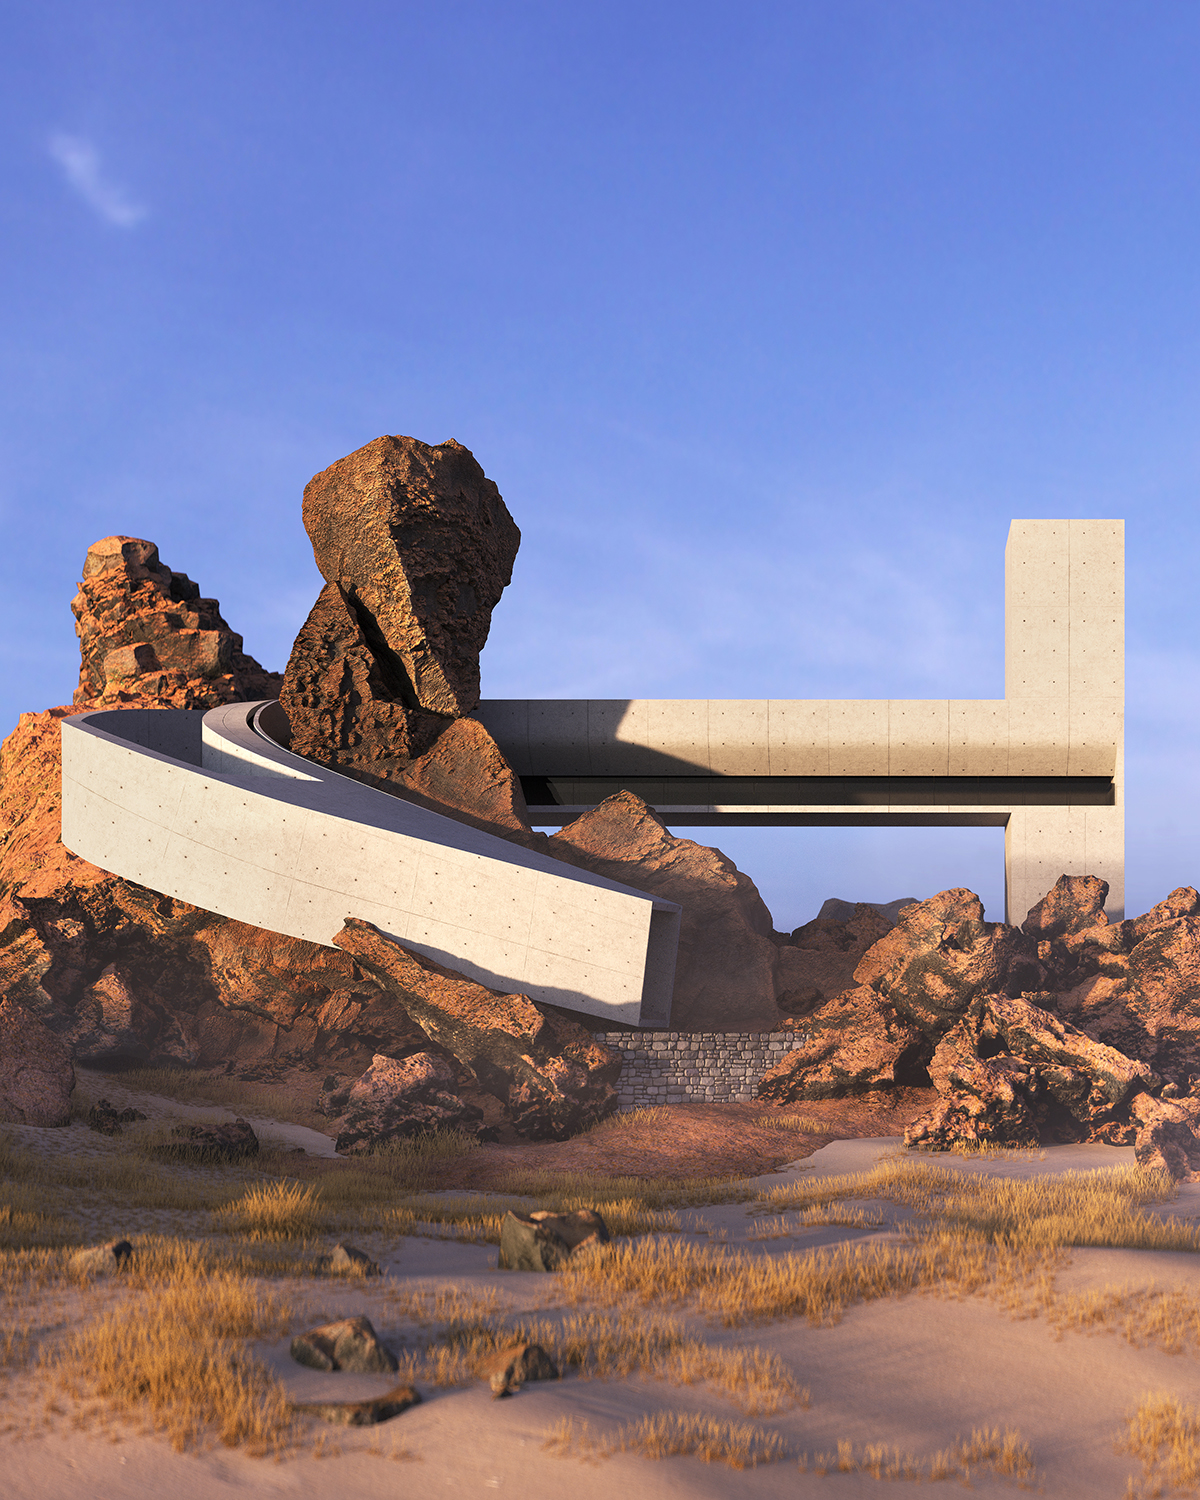 concrete house around the rocky stone in desert